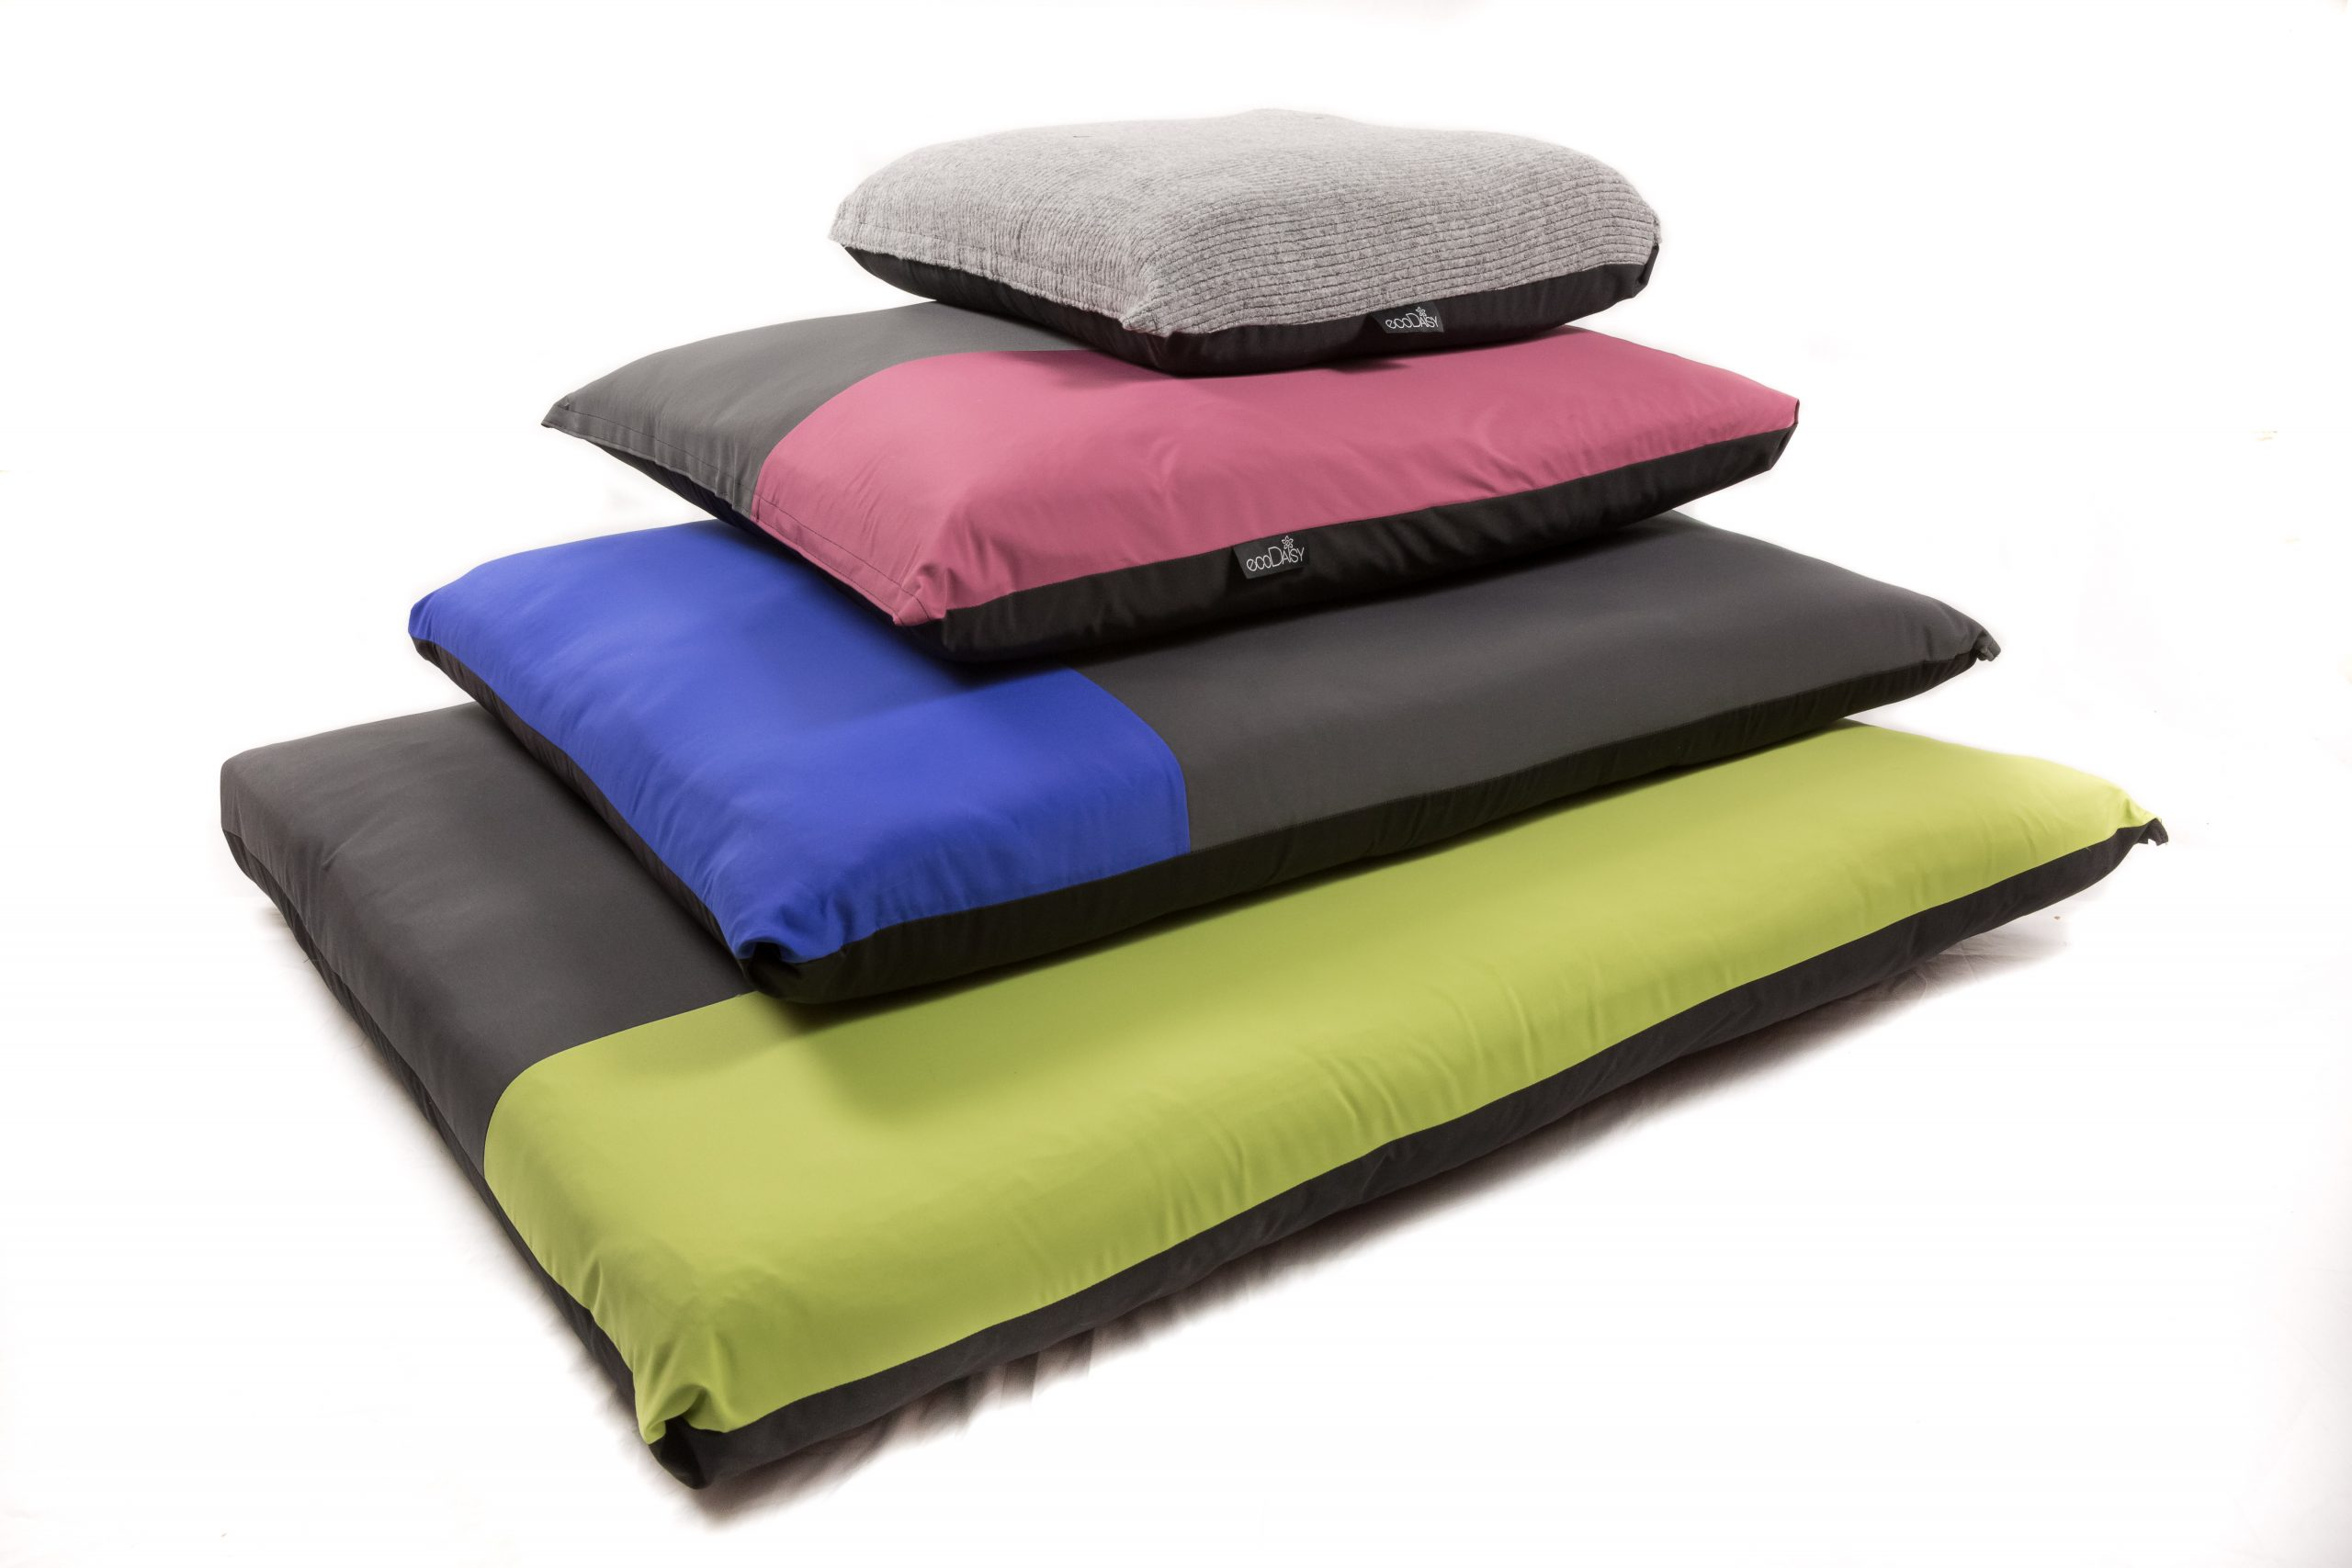 EcoDaisy Mattresses In 4 Sizes 1 80a1d1678de54f8af5d30c5466017860 Scaled